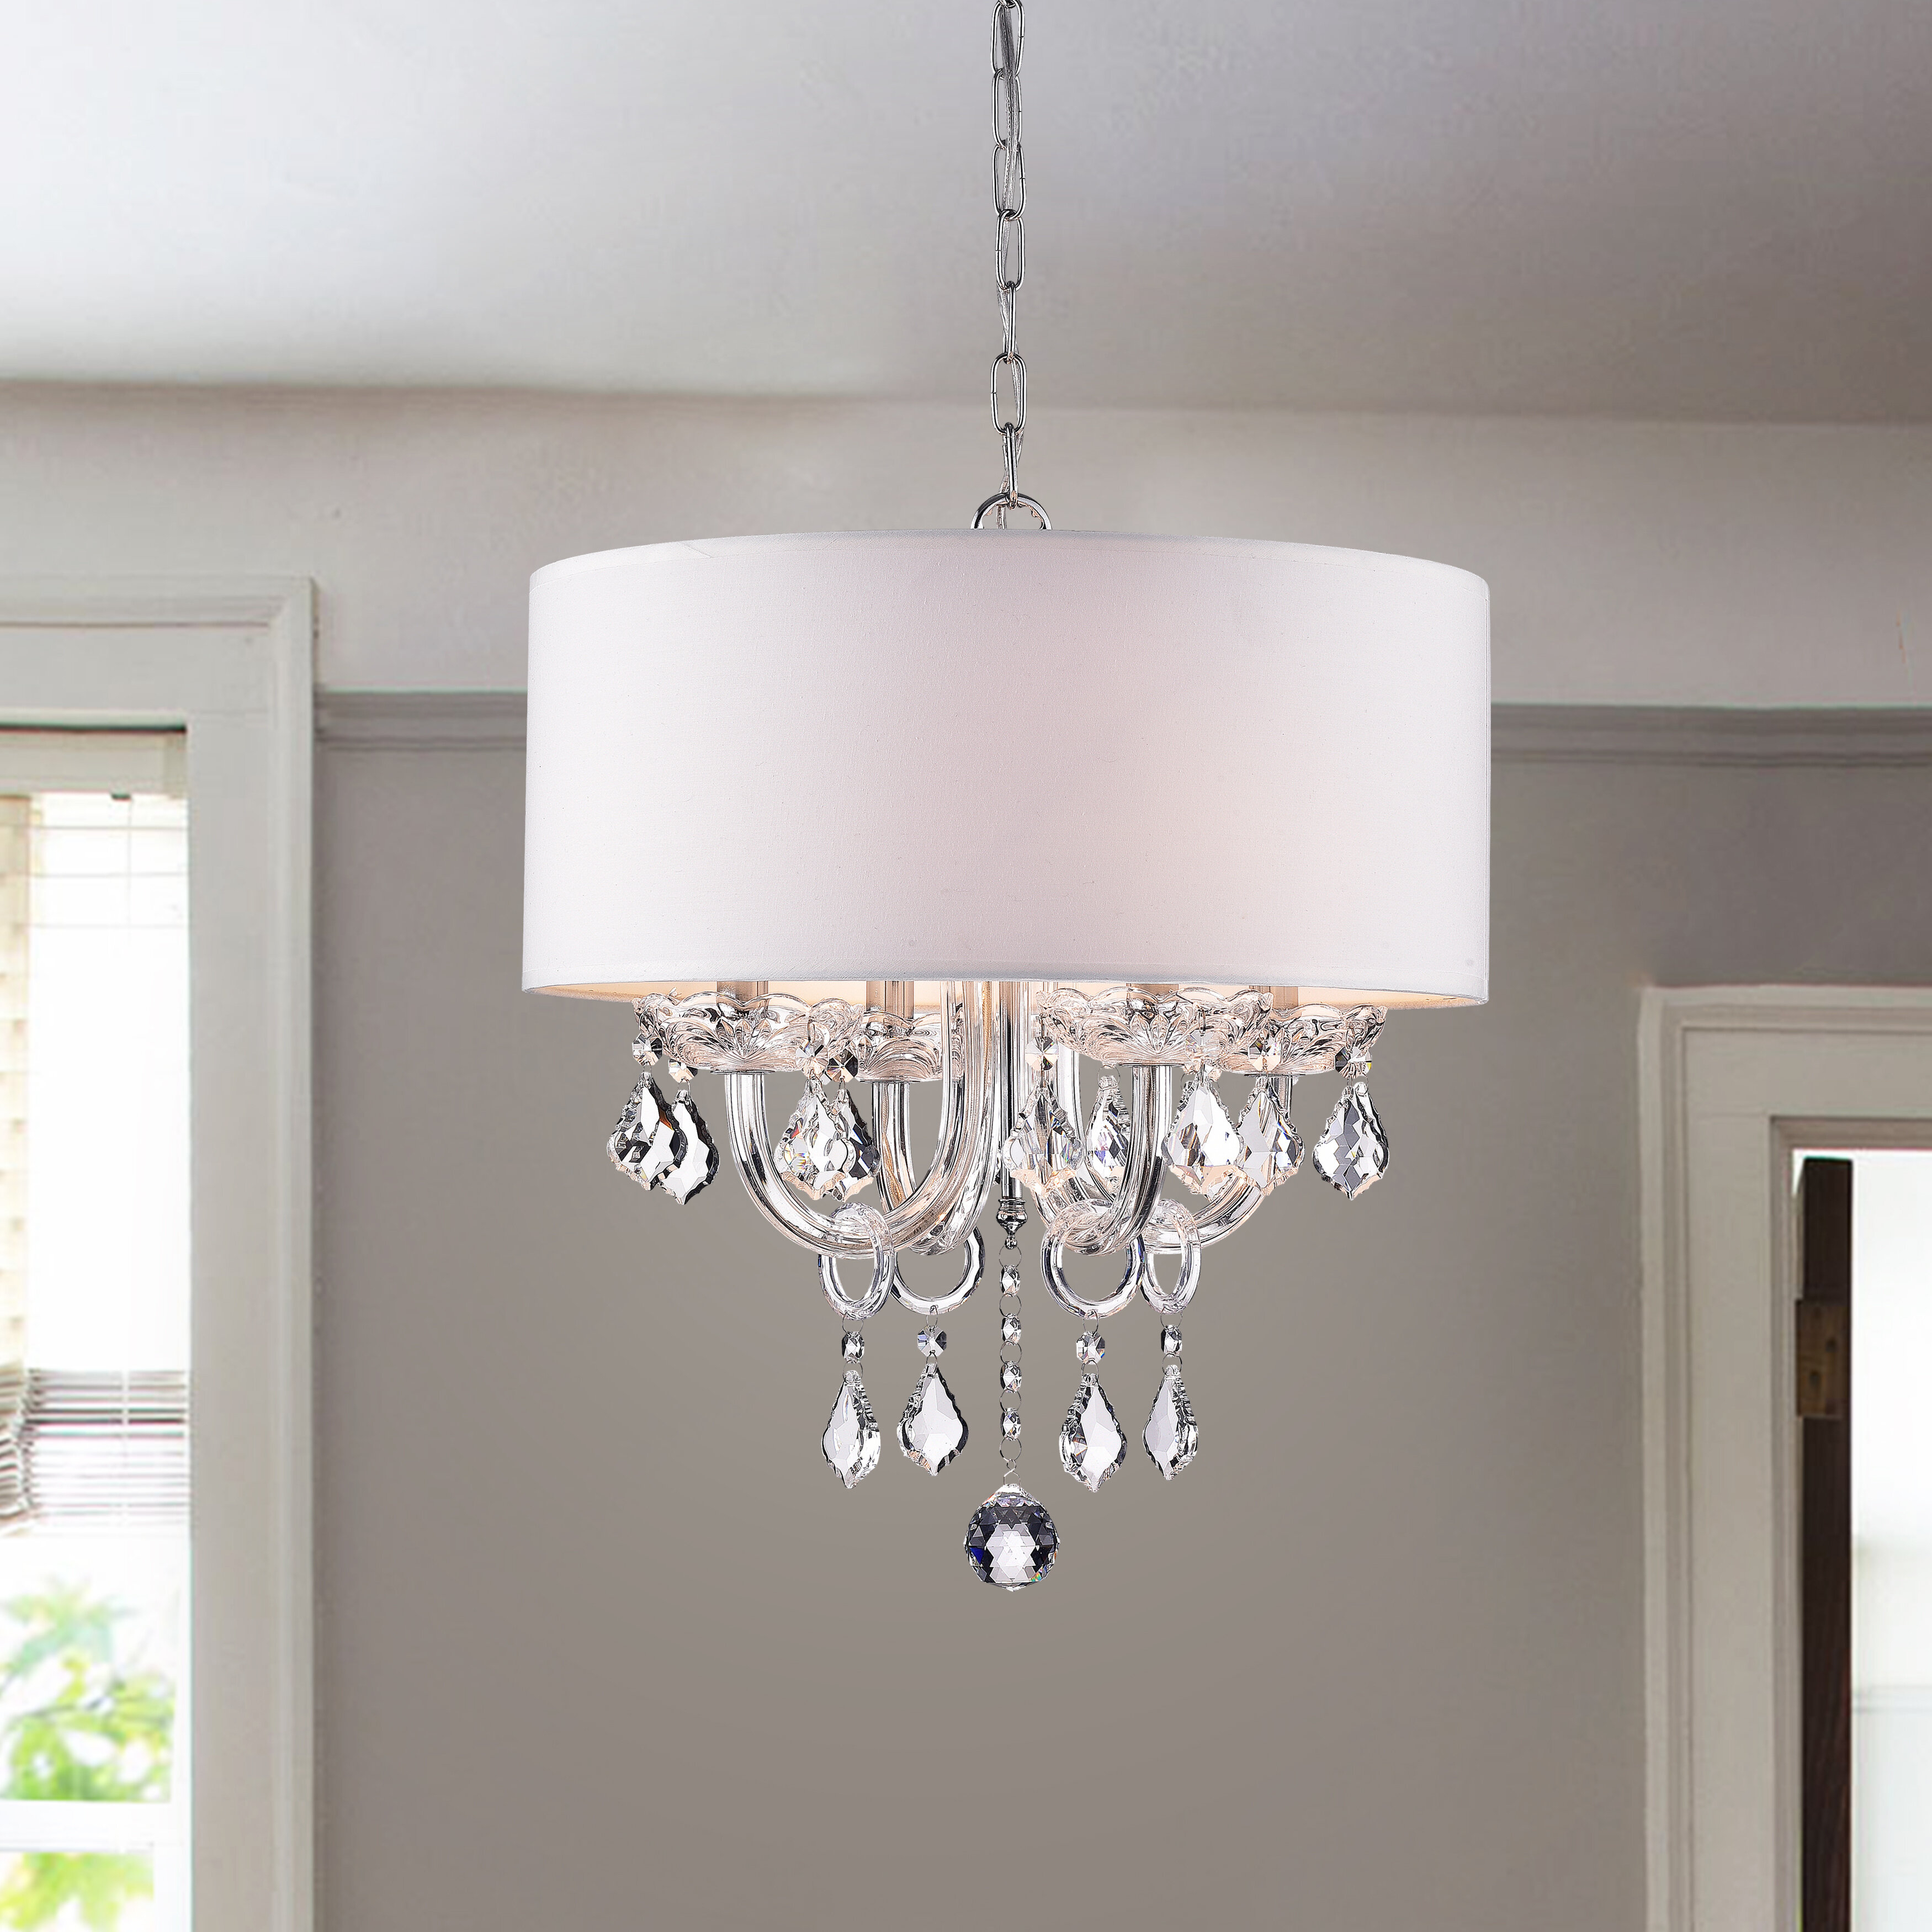 Dunaghy 4 Light Chandelier With Regard To Lindsey 4 Light Drum Chandeliers (Photo 6 of 30)